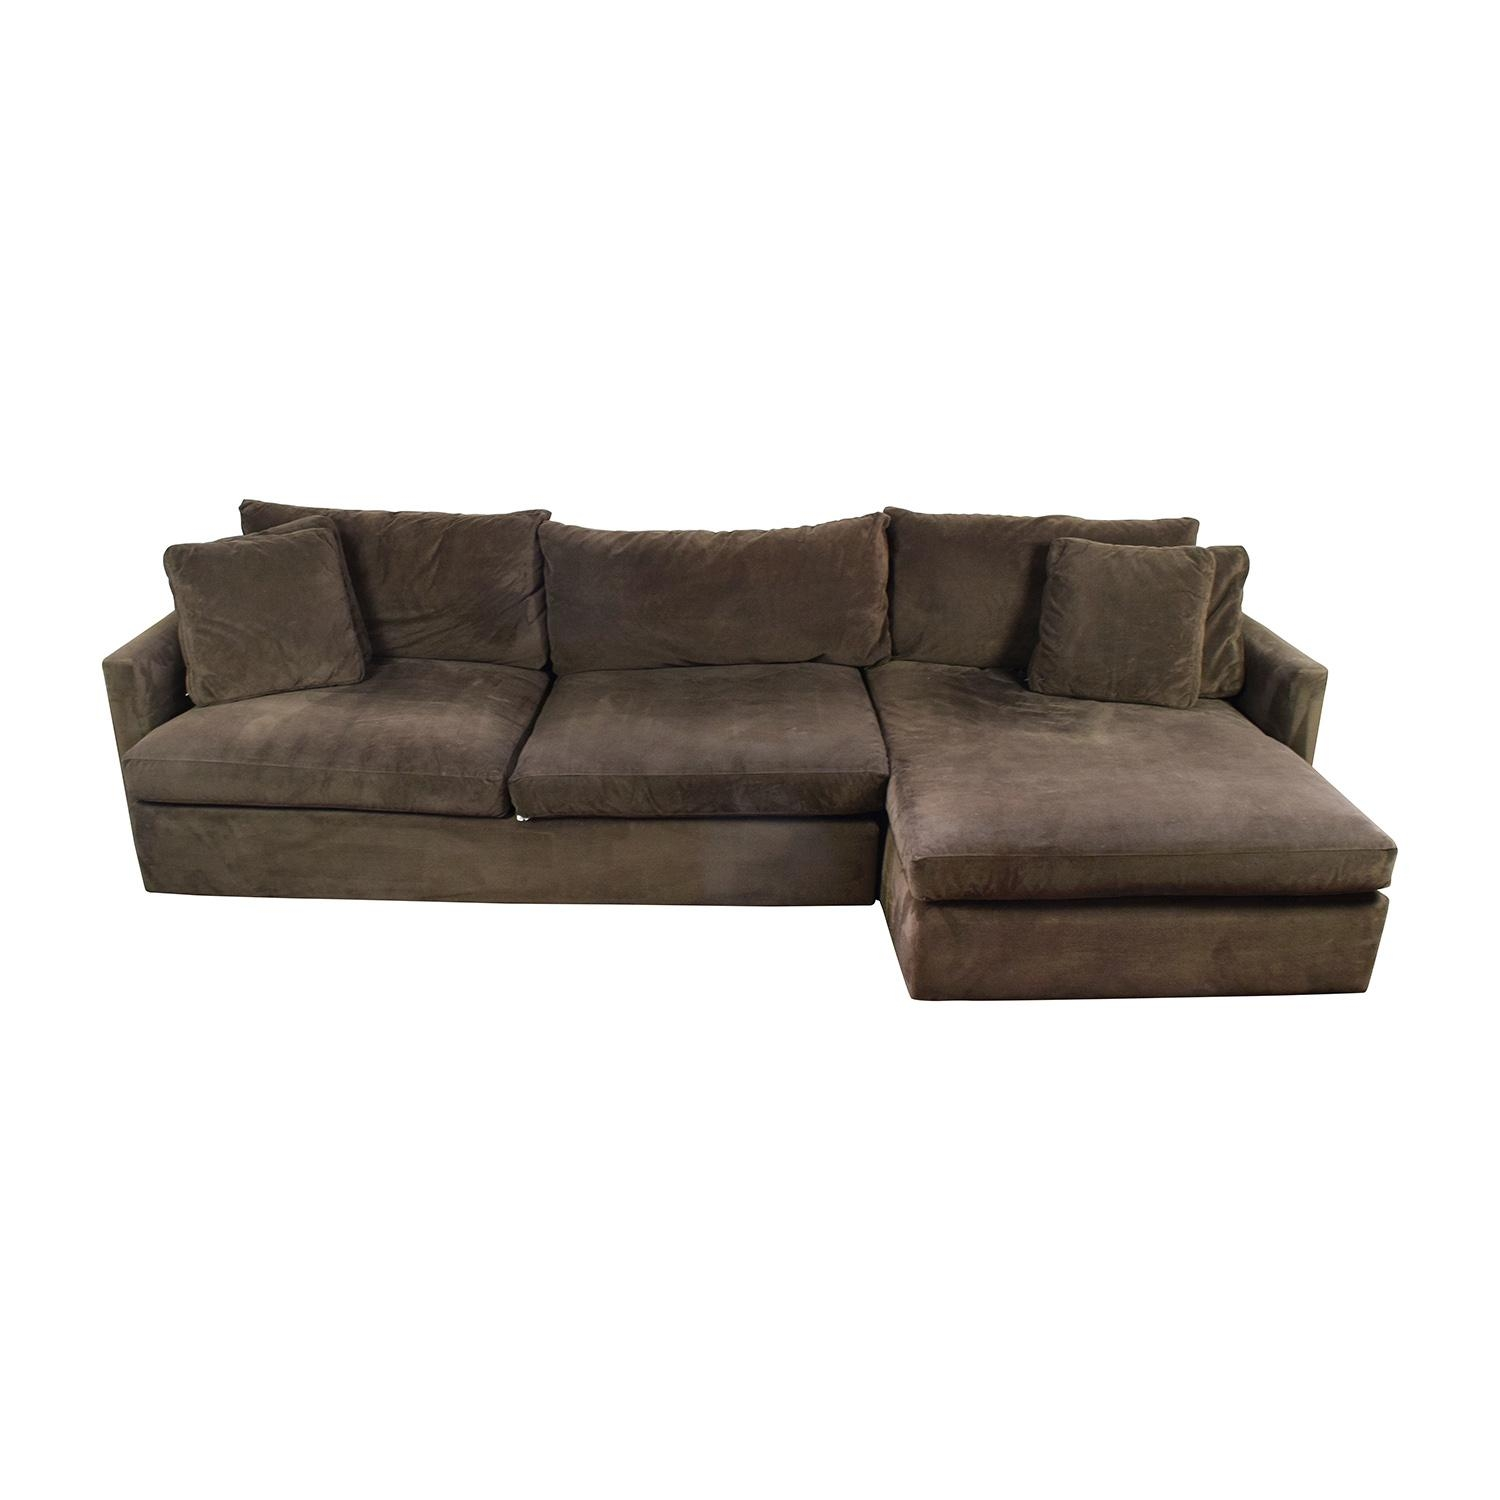 89% Off - Crate And Barrel Crate & Barrel Brown Left Arm Sectional intended for Sectional Crate and Barrel